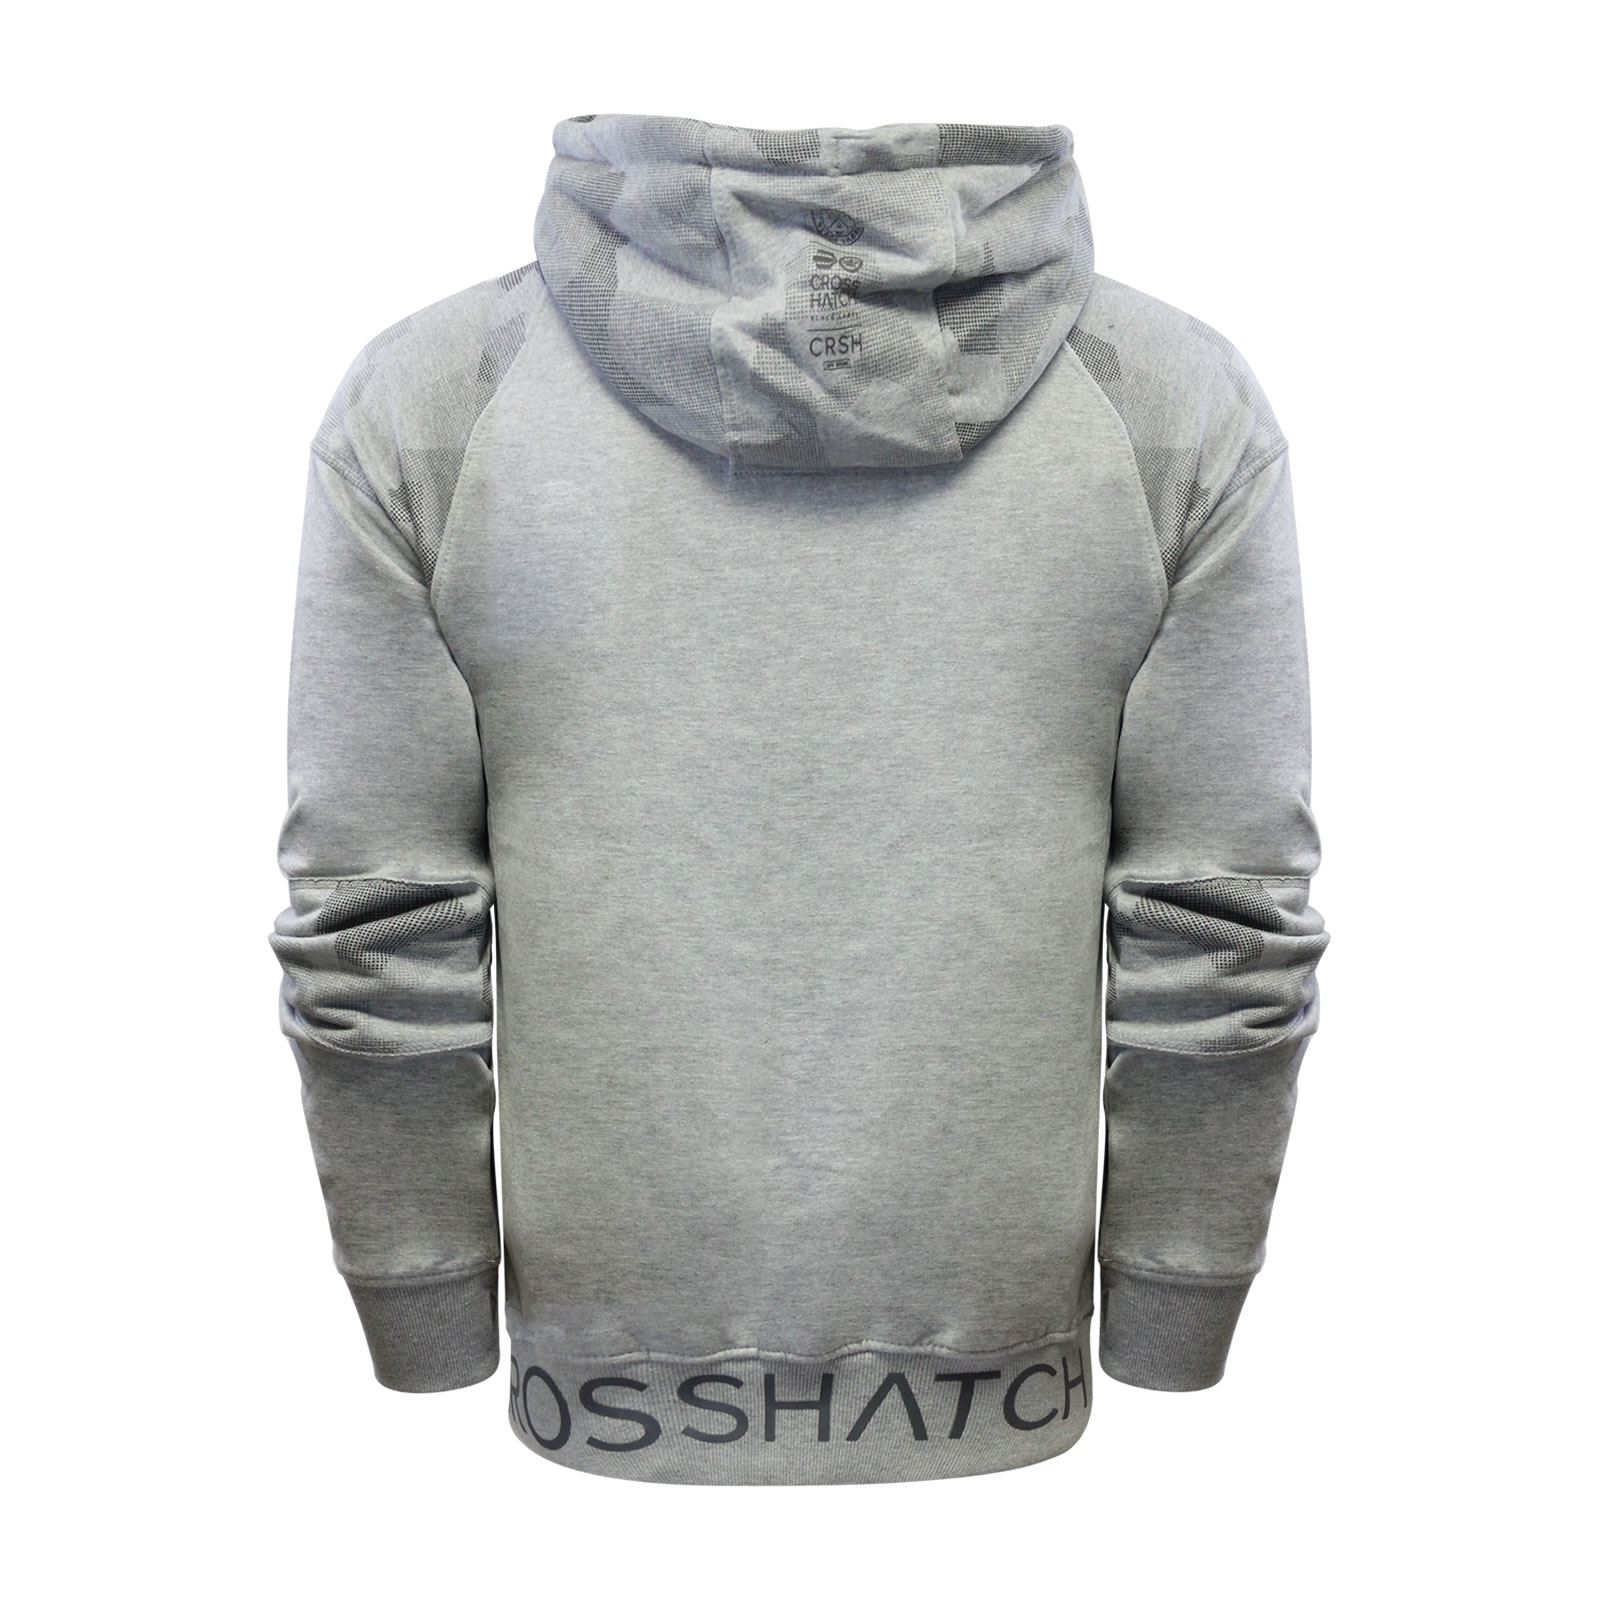 Crosshatch-Quirn-Mens-Hoodie-Cotton-Hooded-Pull-Over-Sweater thumbnail 5